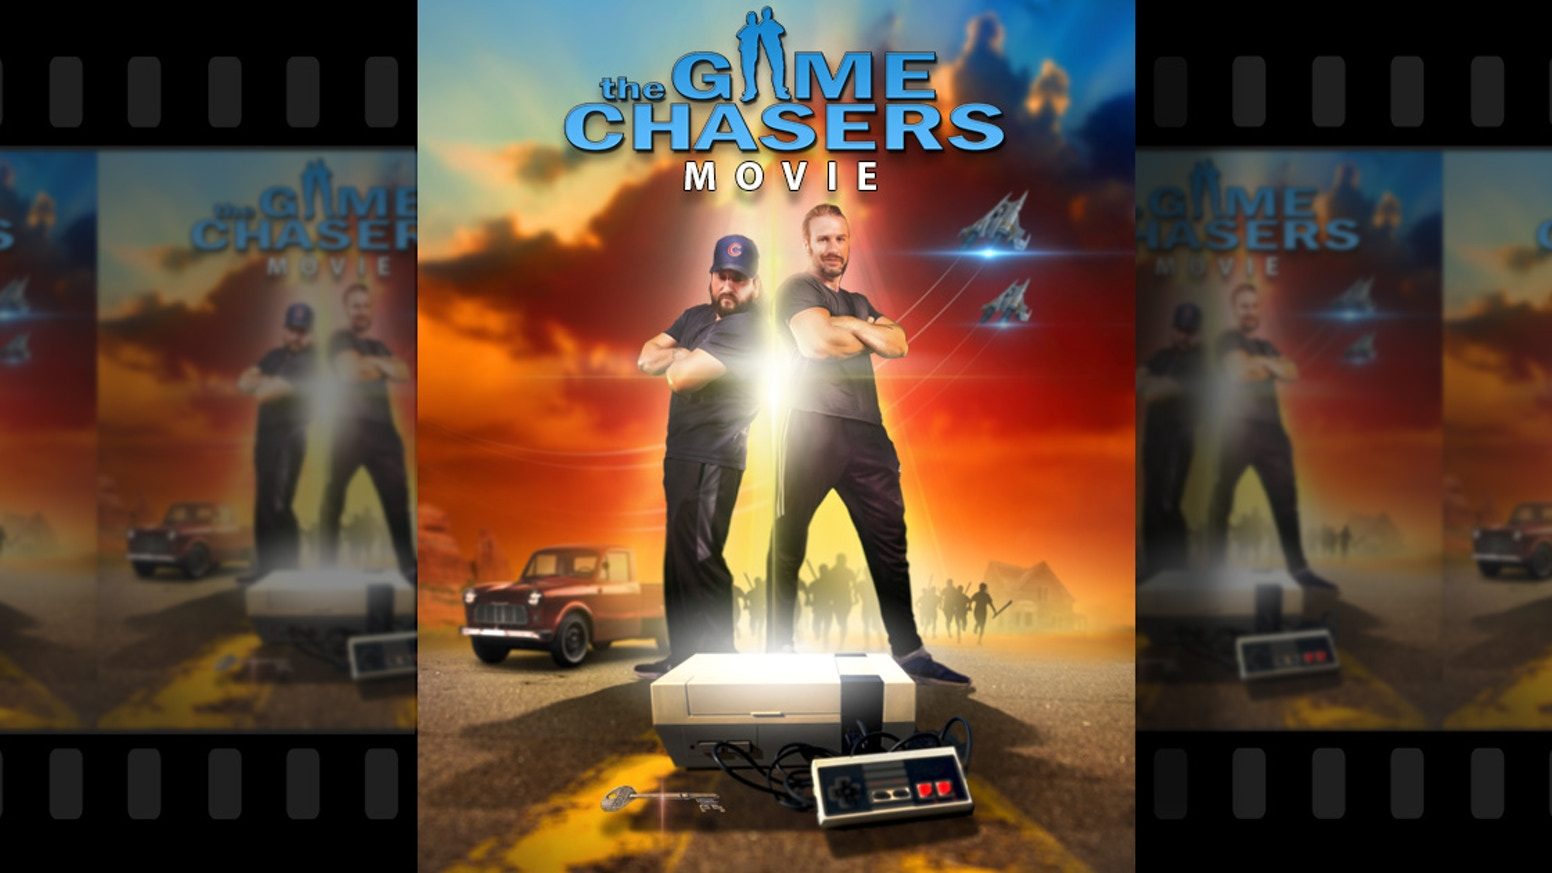 The Game Chasers Motion Picture by Billy Chaser — Kickstarter